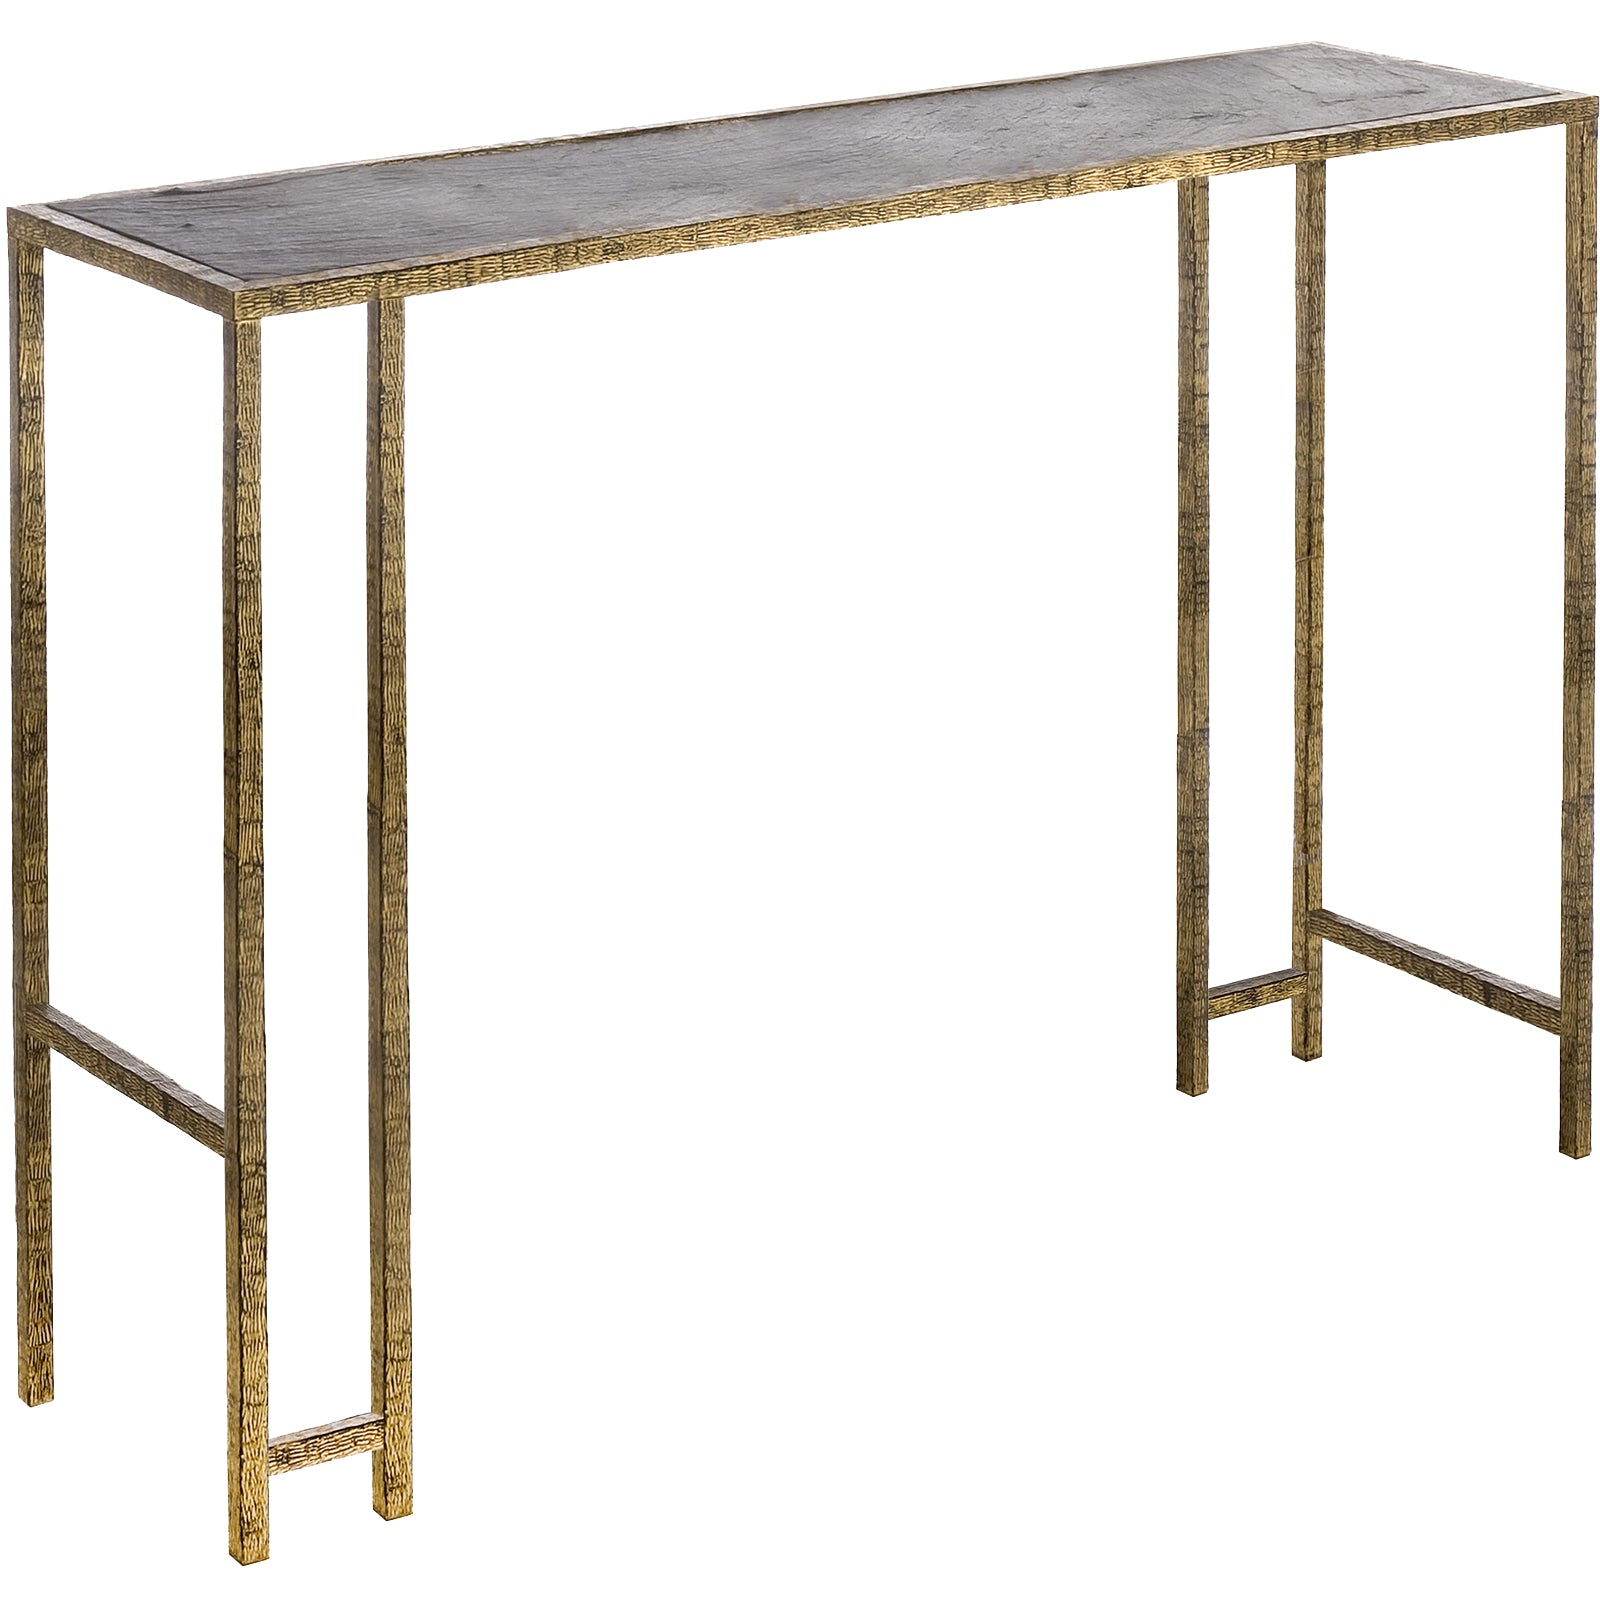 Epure Console Table